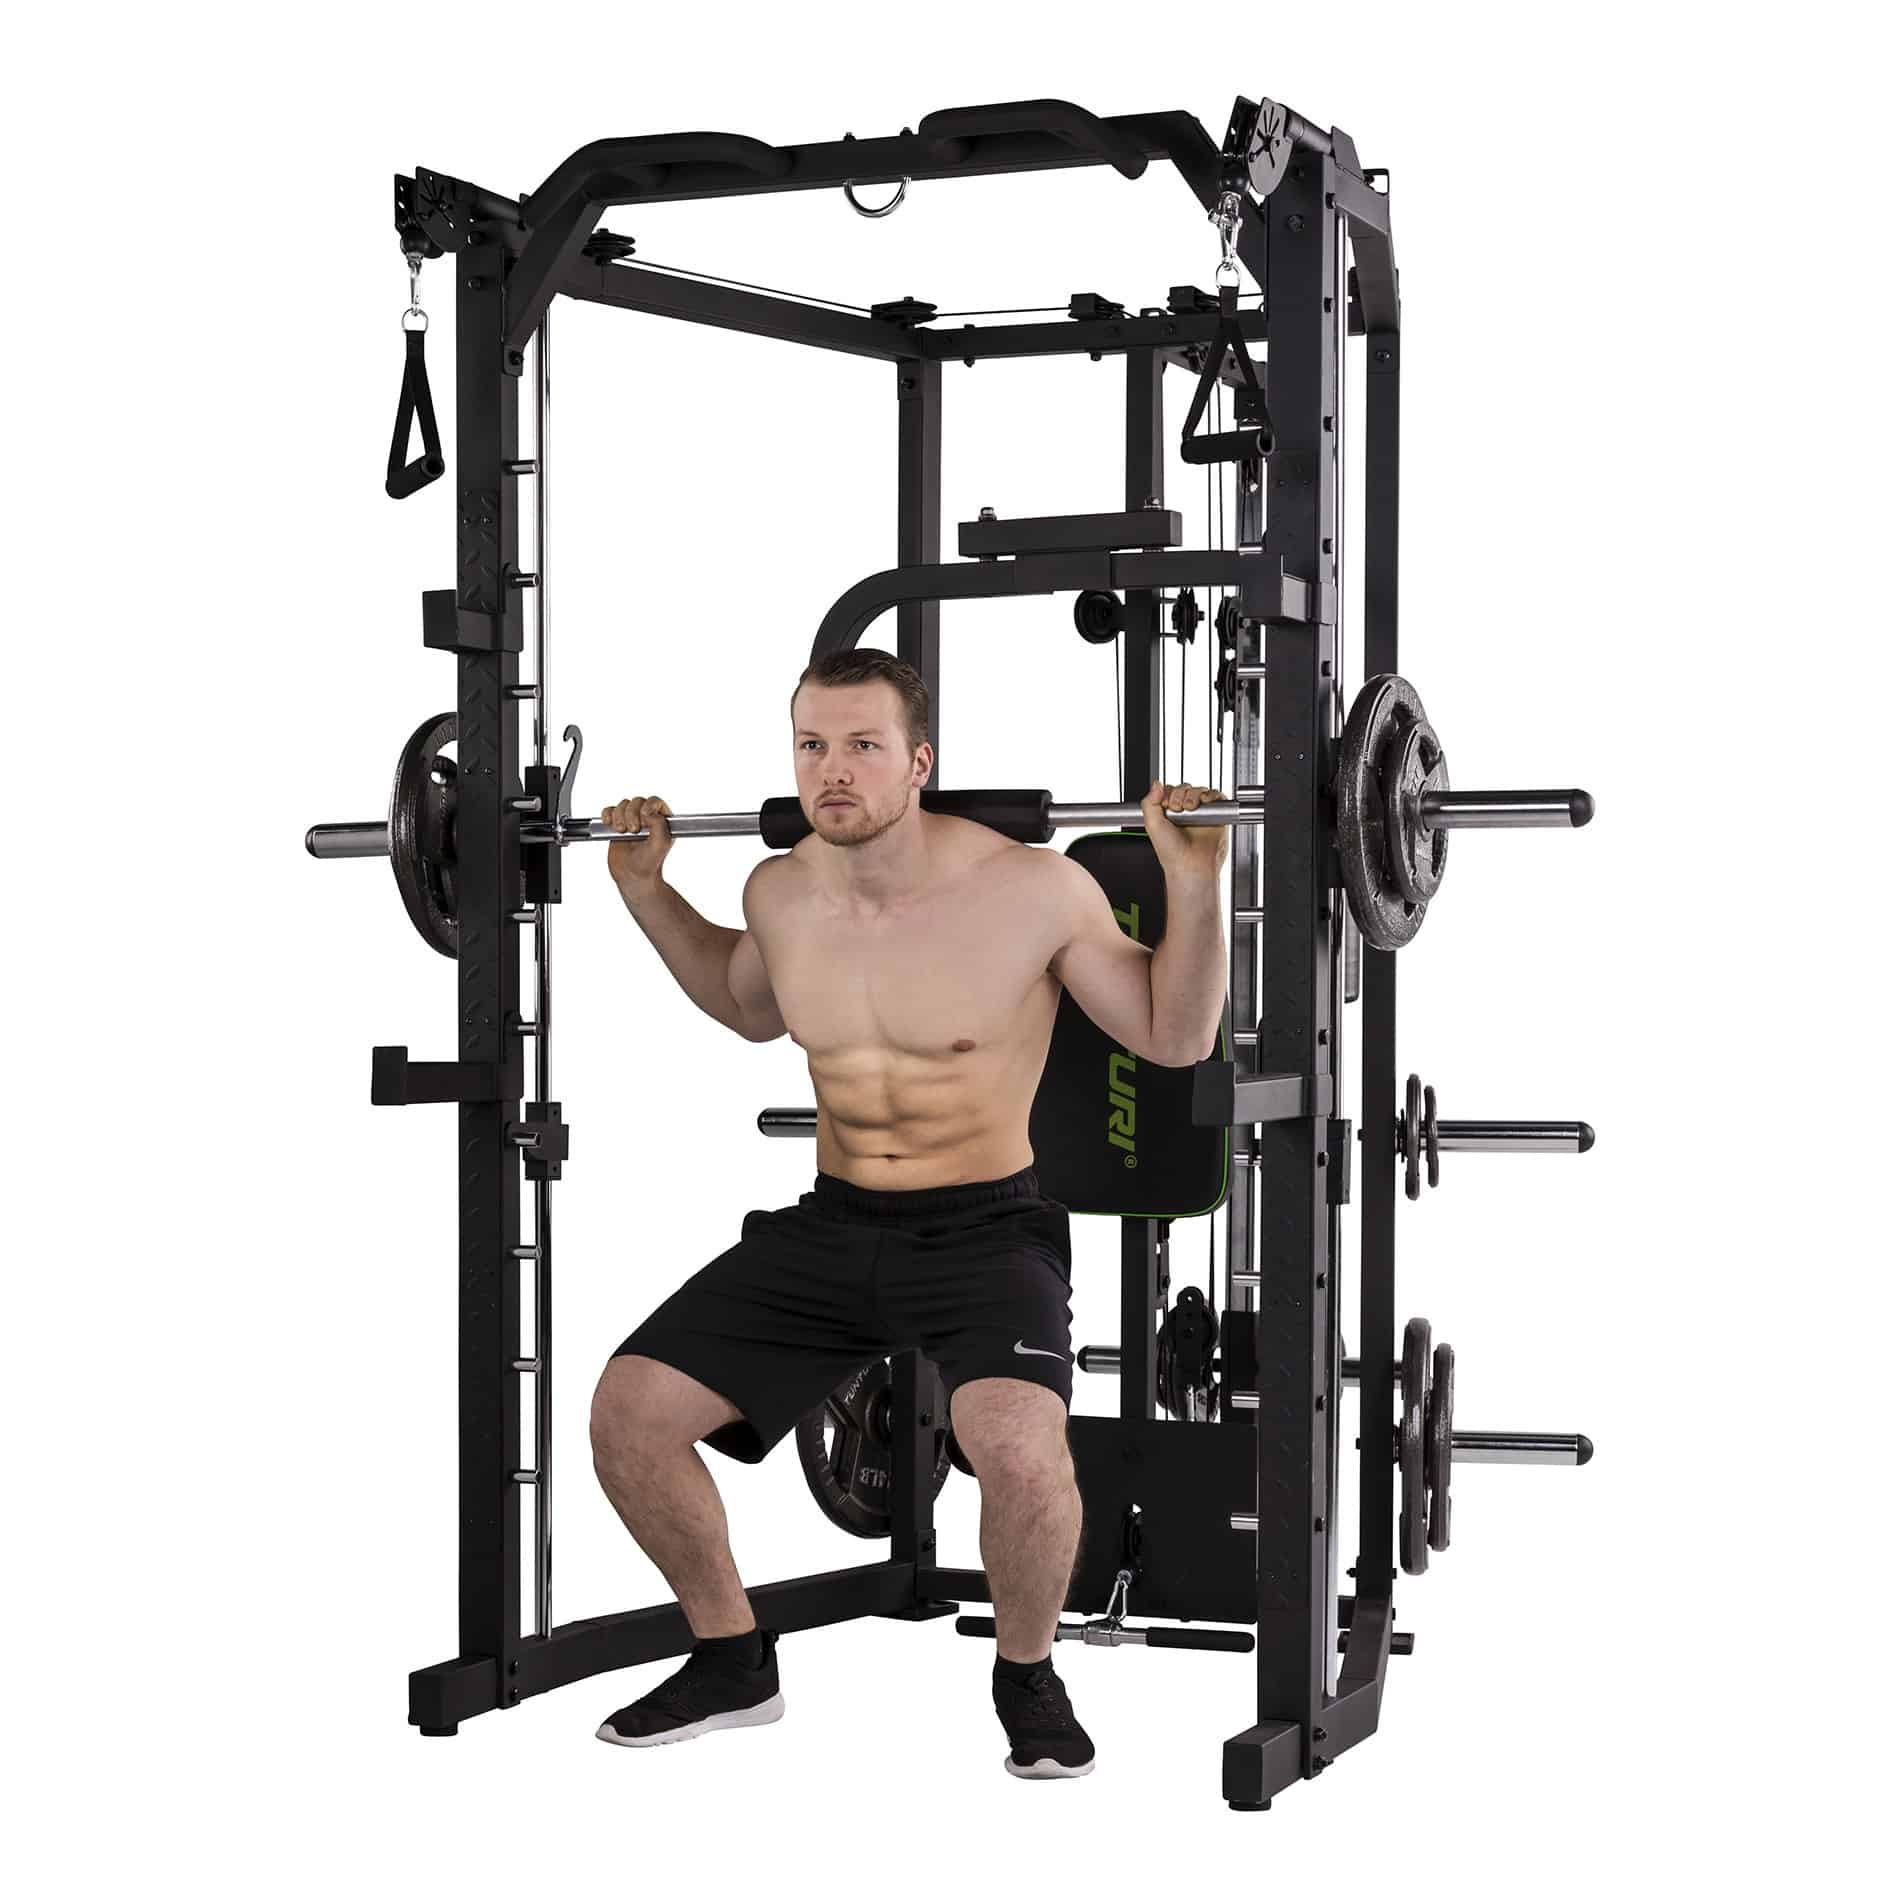 front view of a man dojng squats